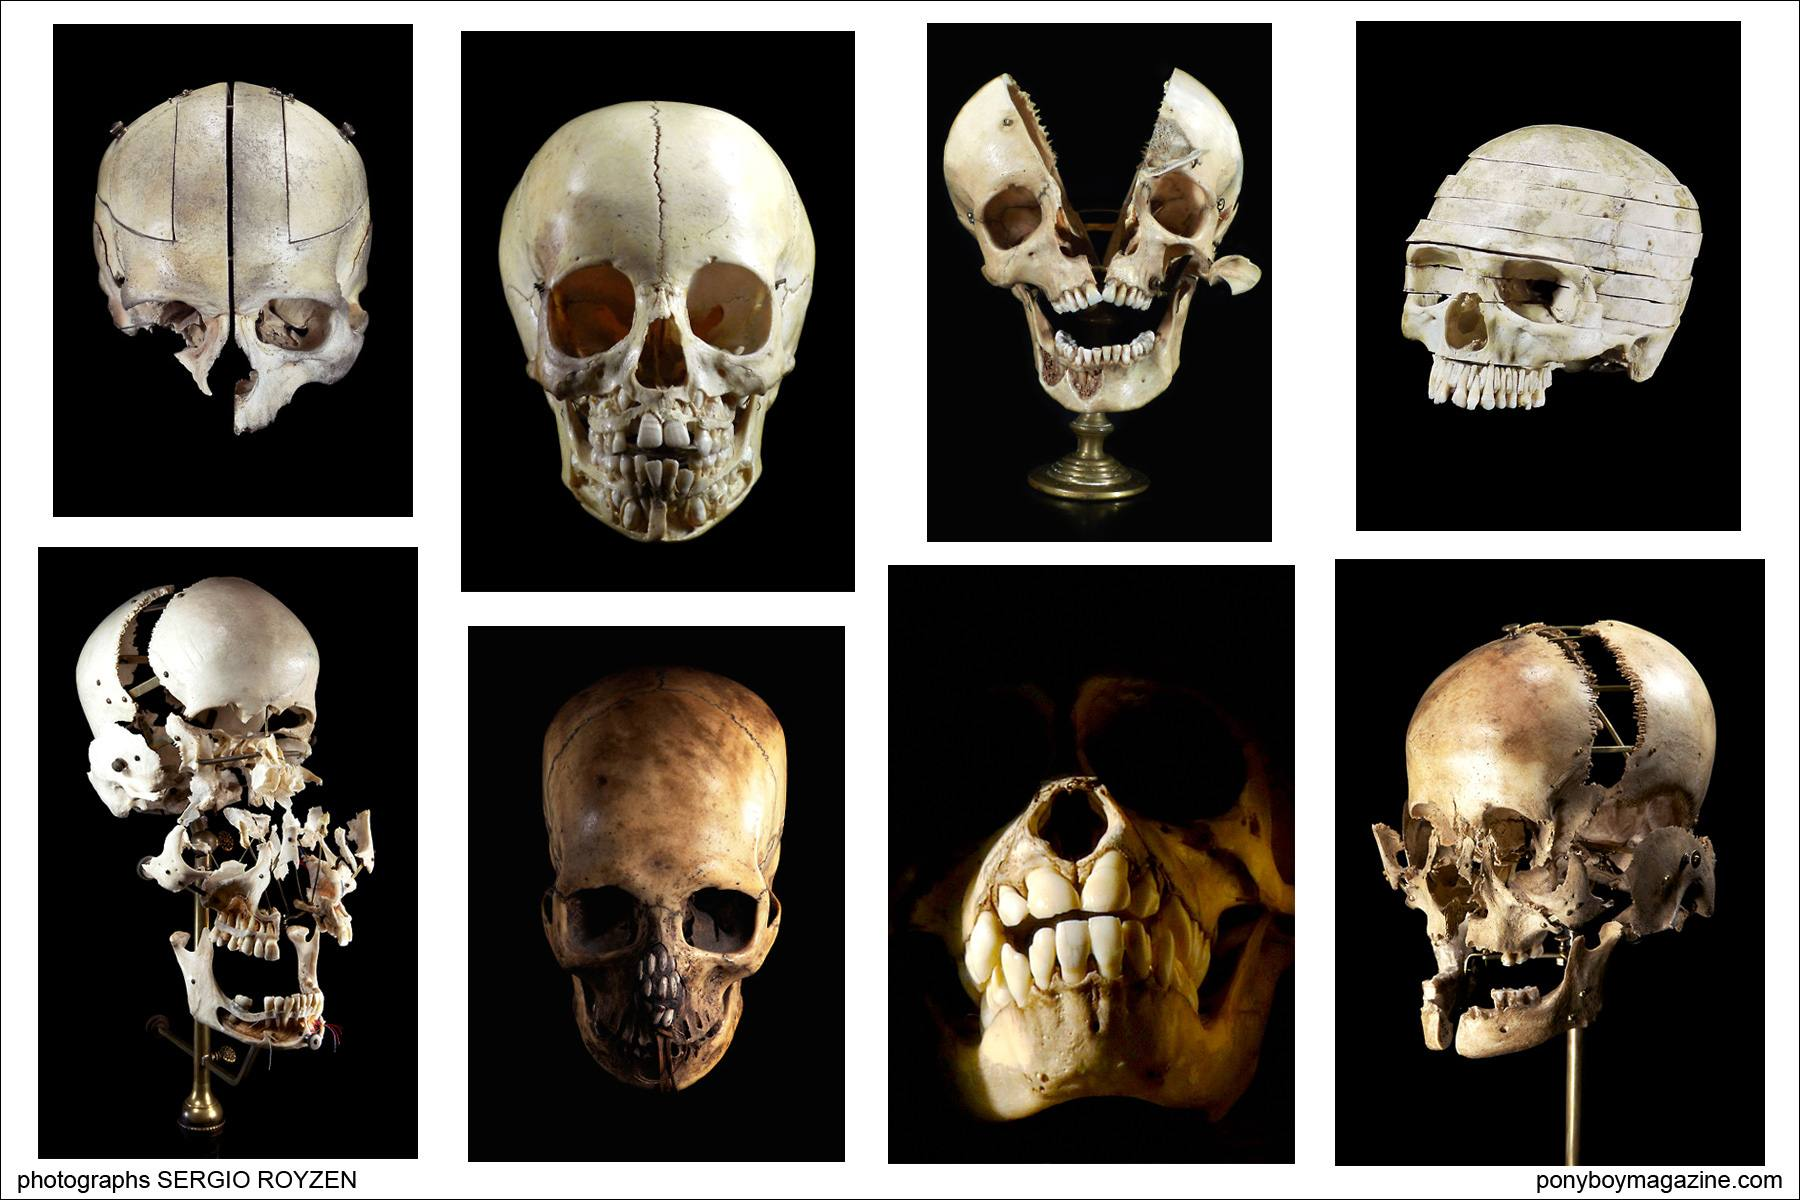 Ryan Matthew Cohn's extensive collection of skulls photographed by Sergio Royzen.